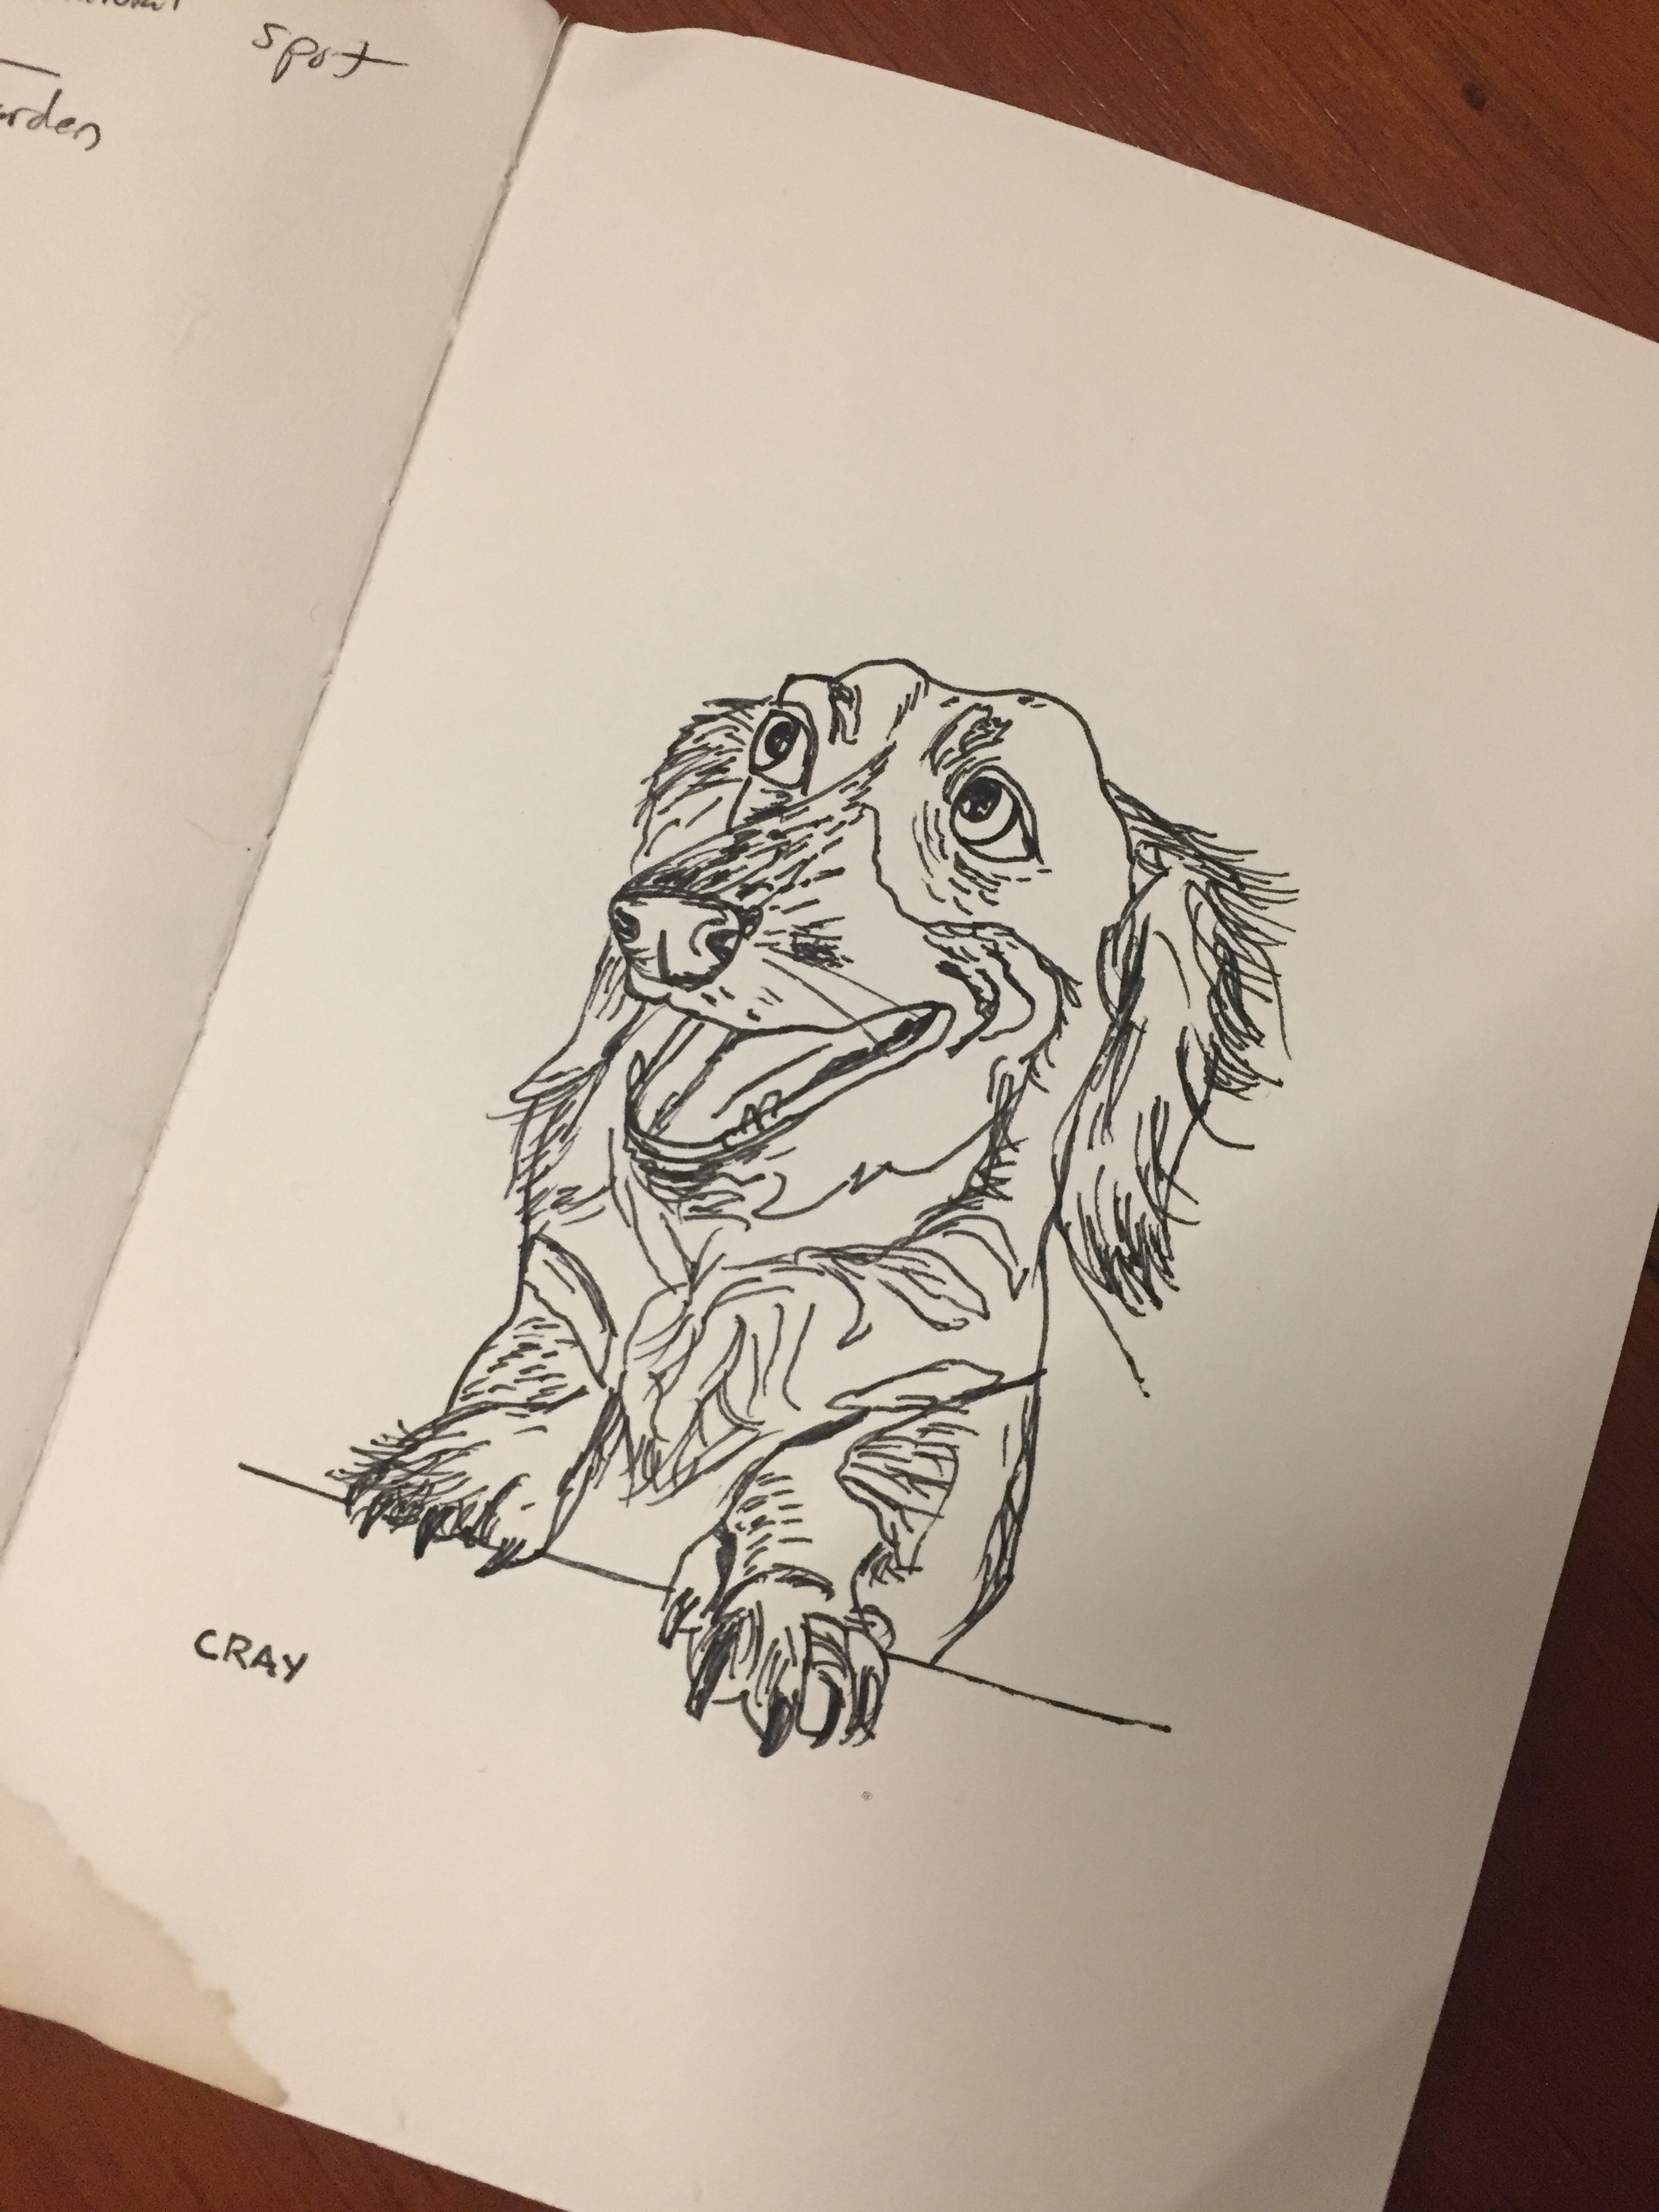 Crayola.  Quick sketch. My always happy dachshund.